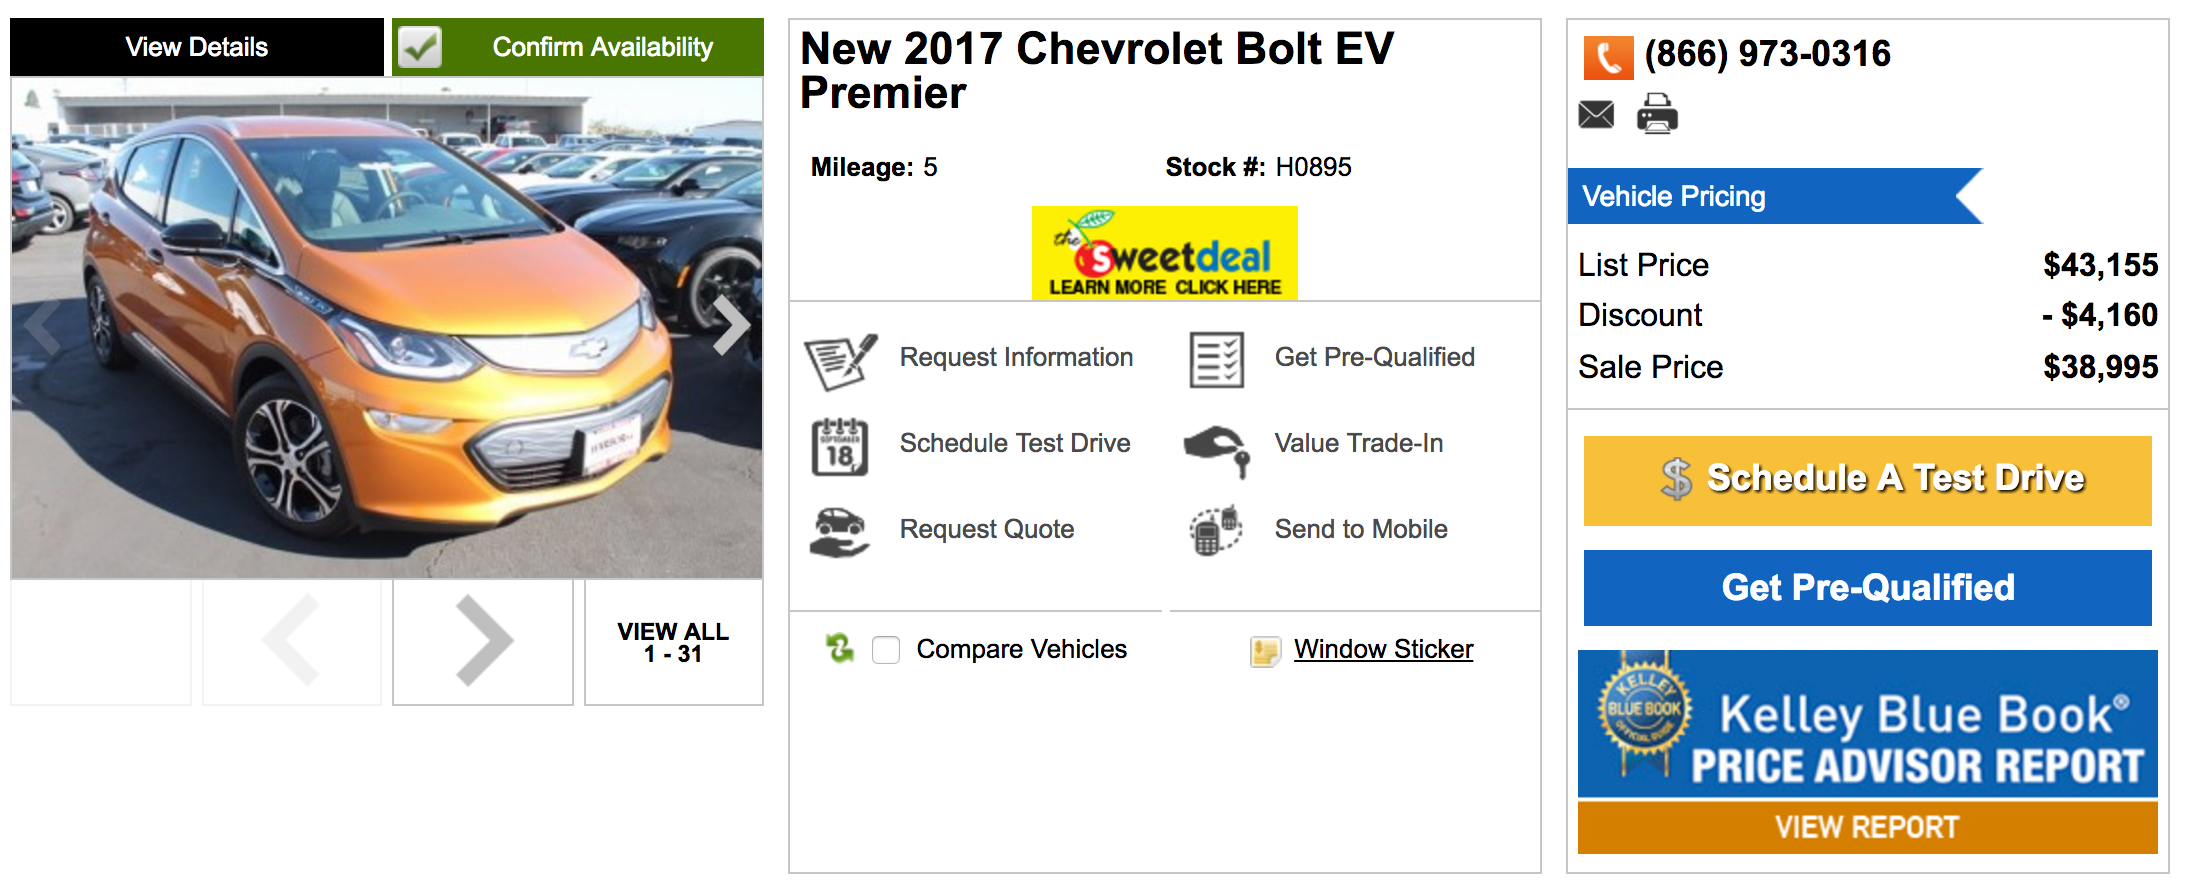 Chevy Bolt Ev Is Already Being Ed By 5 000 As Deliveries Are Stalling Ca Customers Paying 25k After Incentives